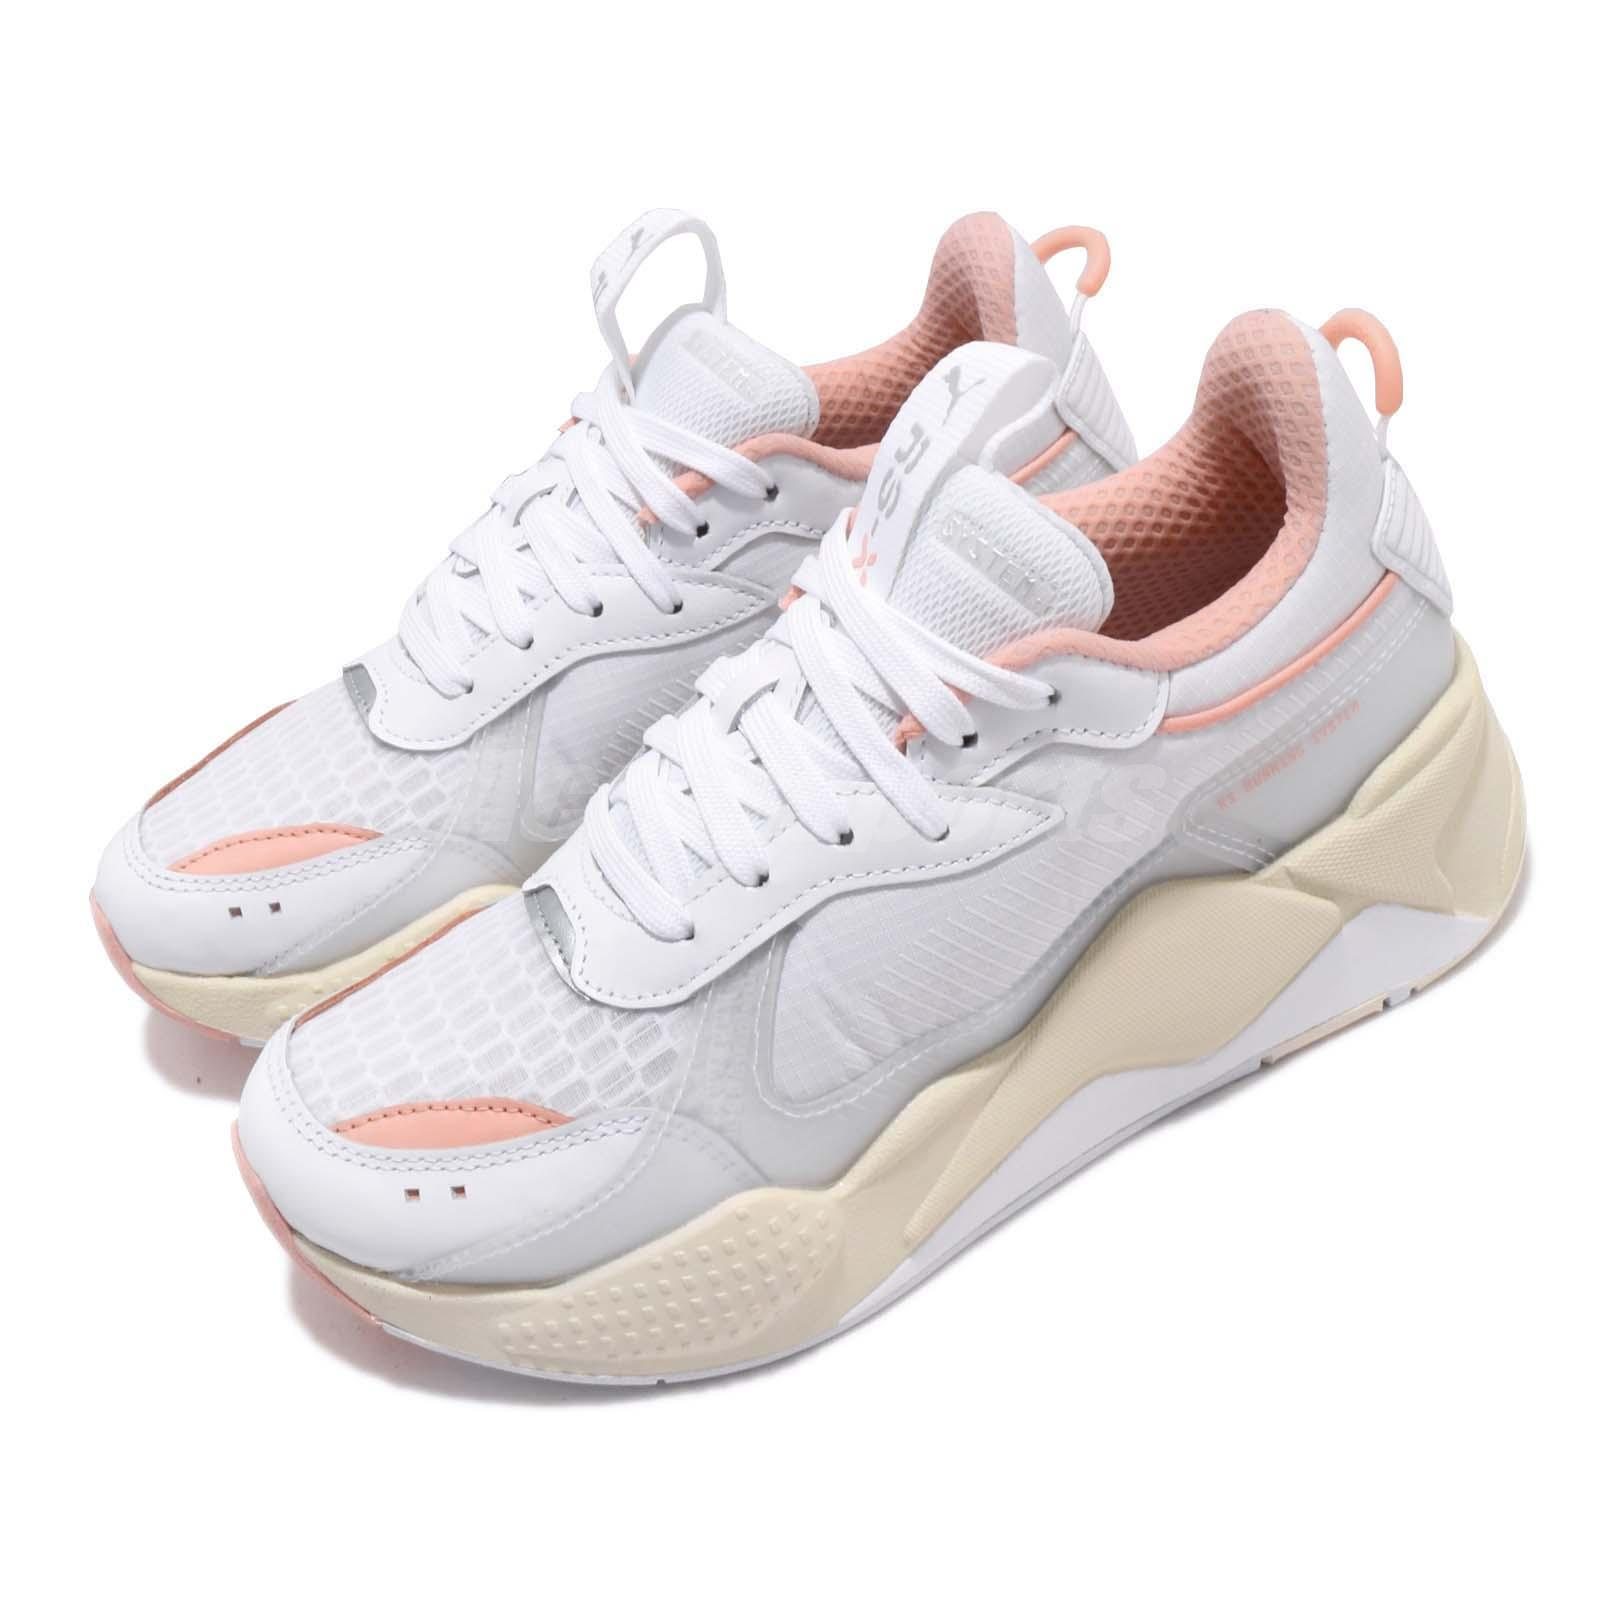 Details about Puma RS-X Tech White Peach Bud Mens Womens Lifestyle Chucky  Shoes 369329-04